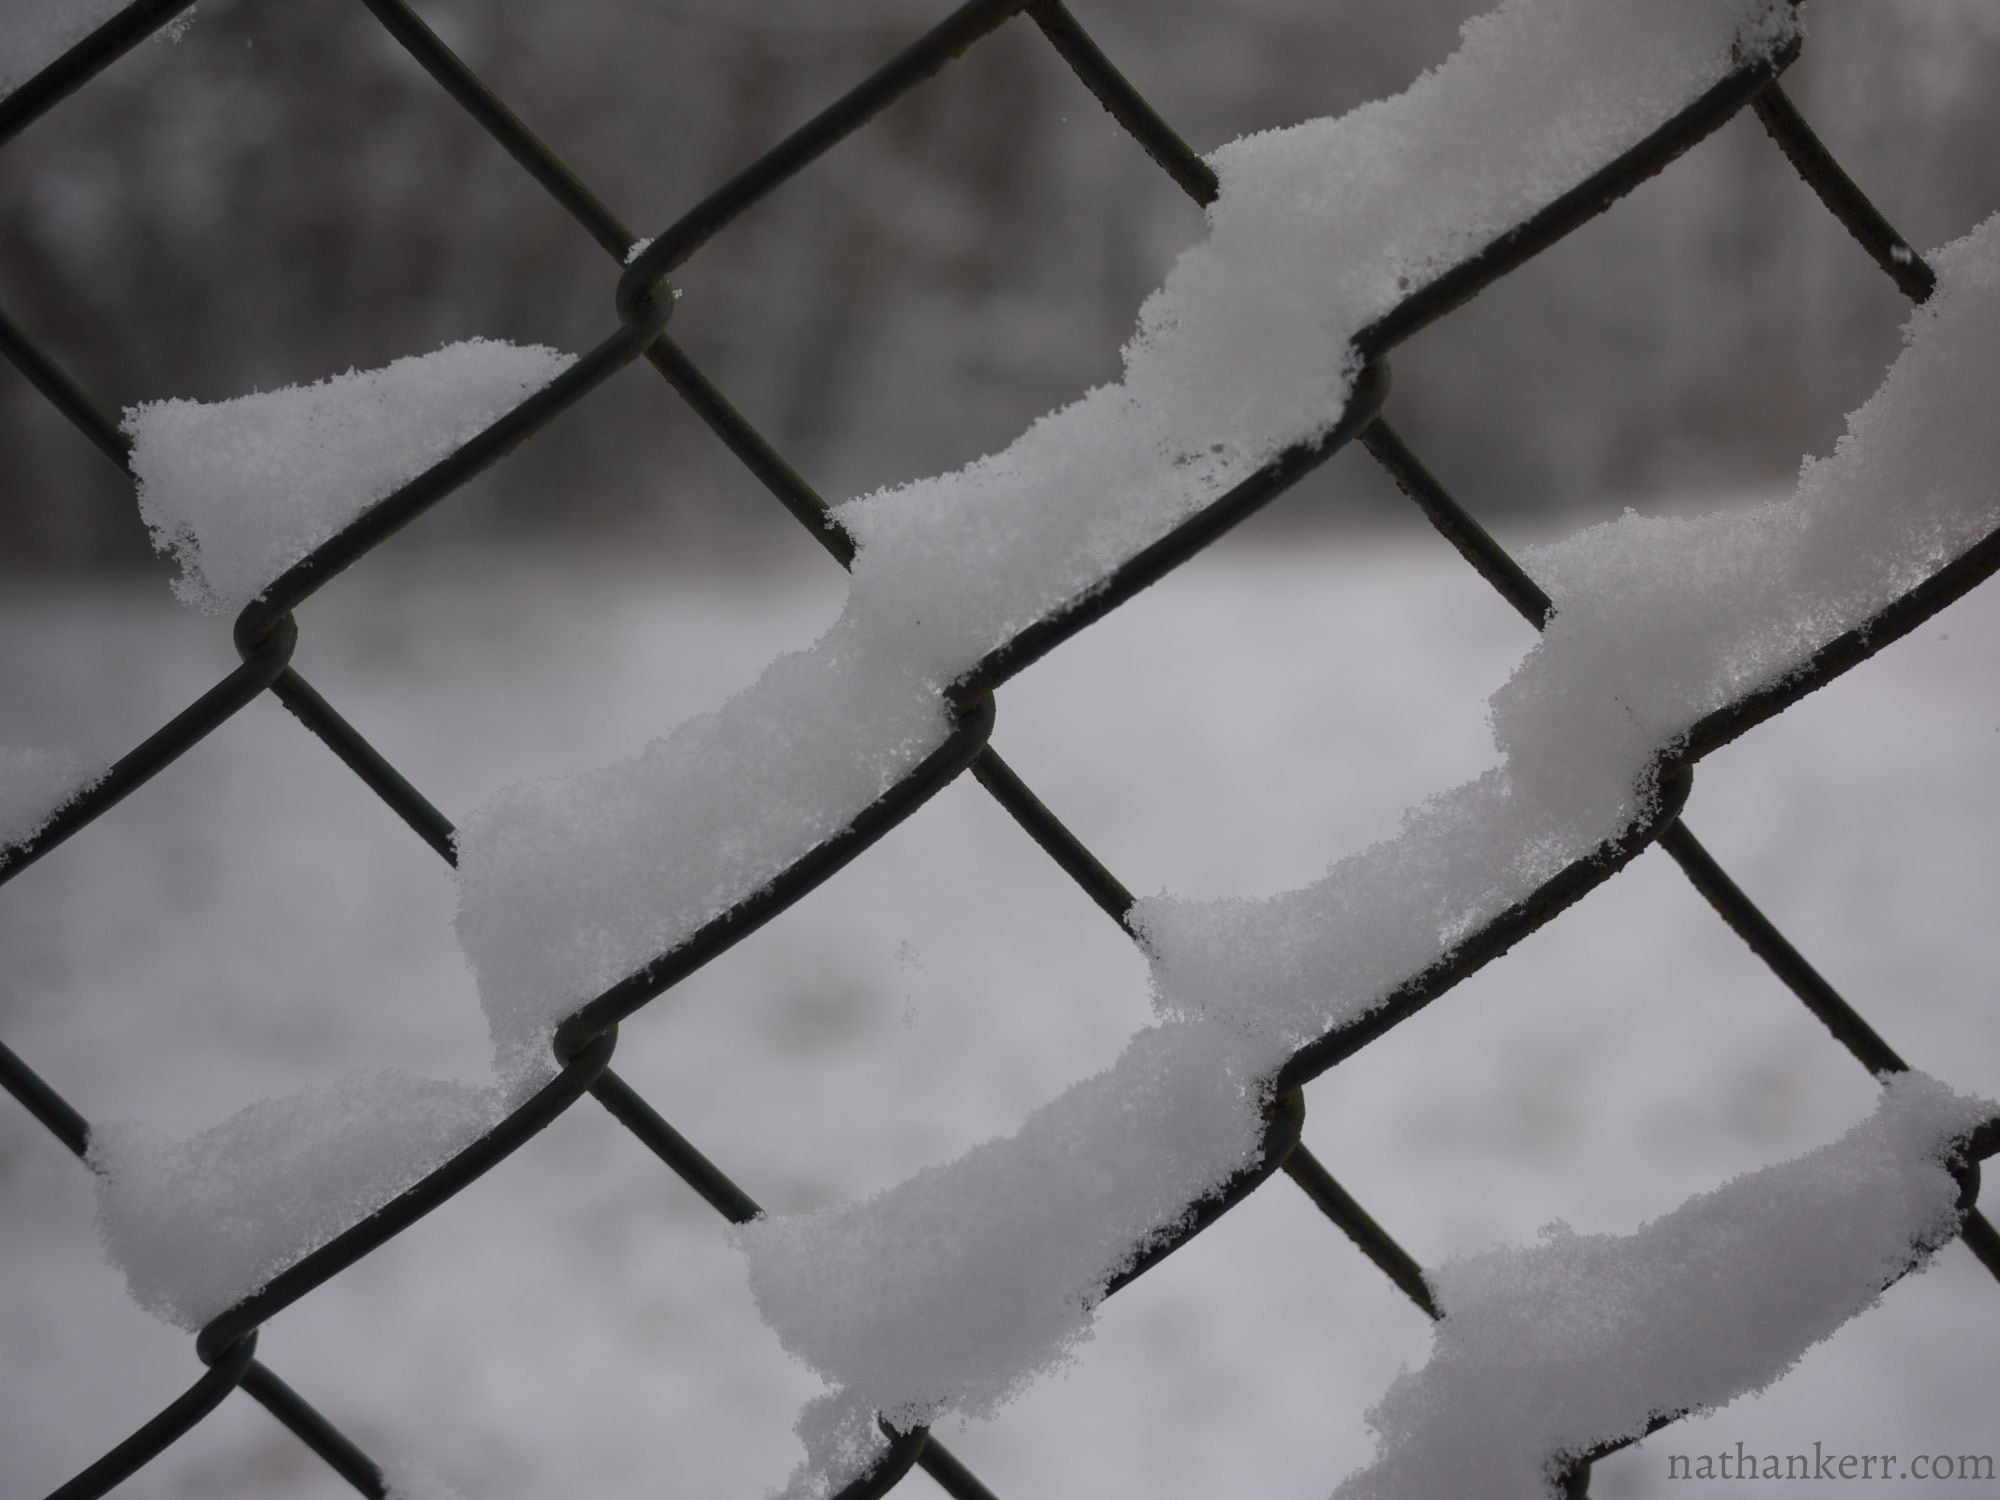 Photograph Snow Fence by Nathan Kerr on 500px